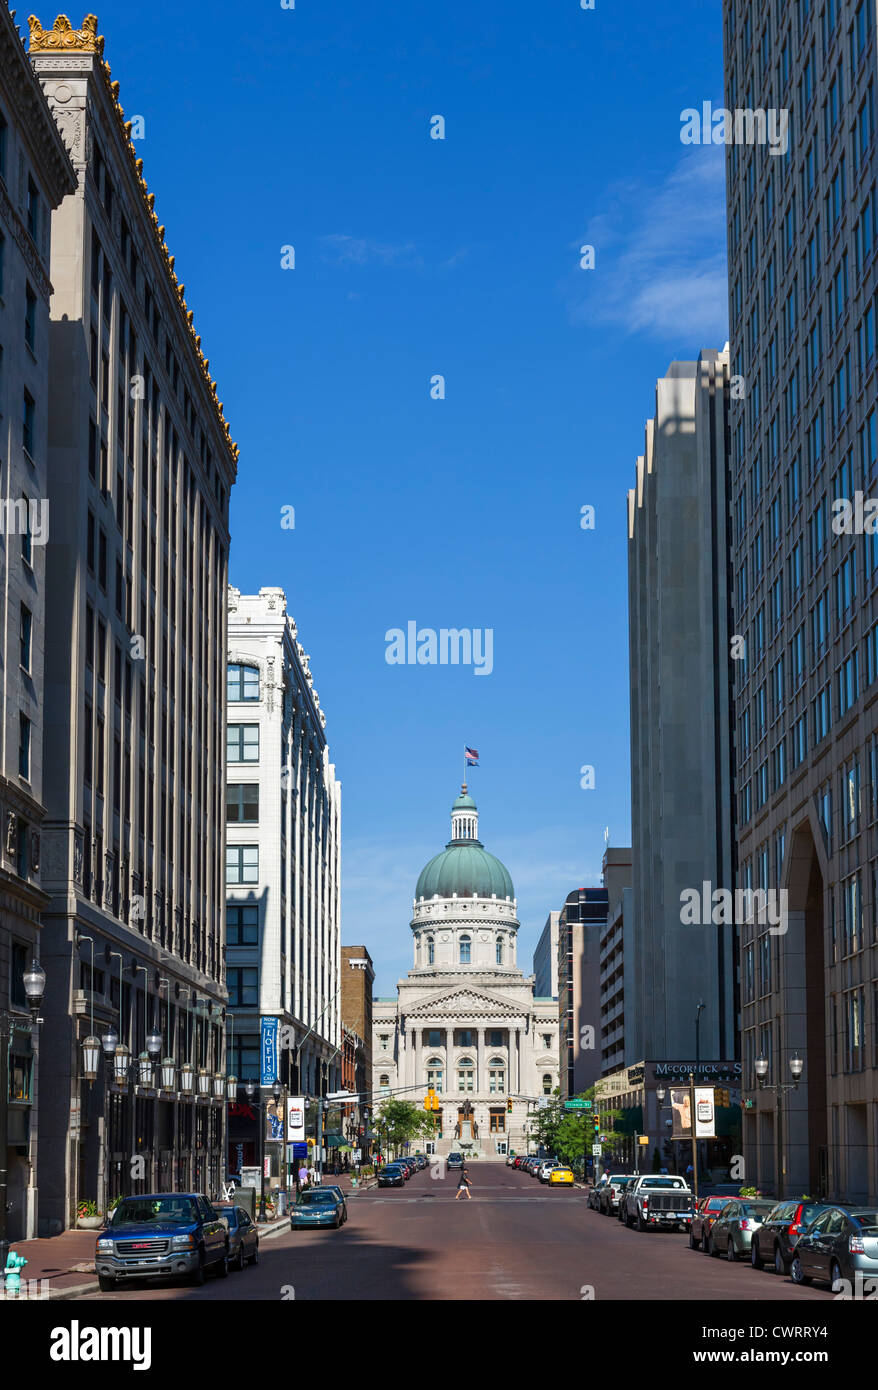 View down West Market Street towards the Indiana Statehouse (State Capitol), Indianapolis, Indiana, USA - Stock Image